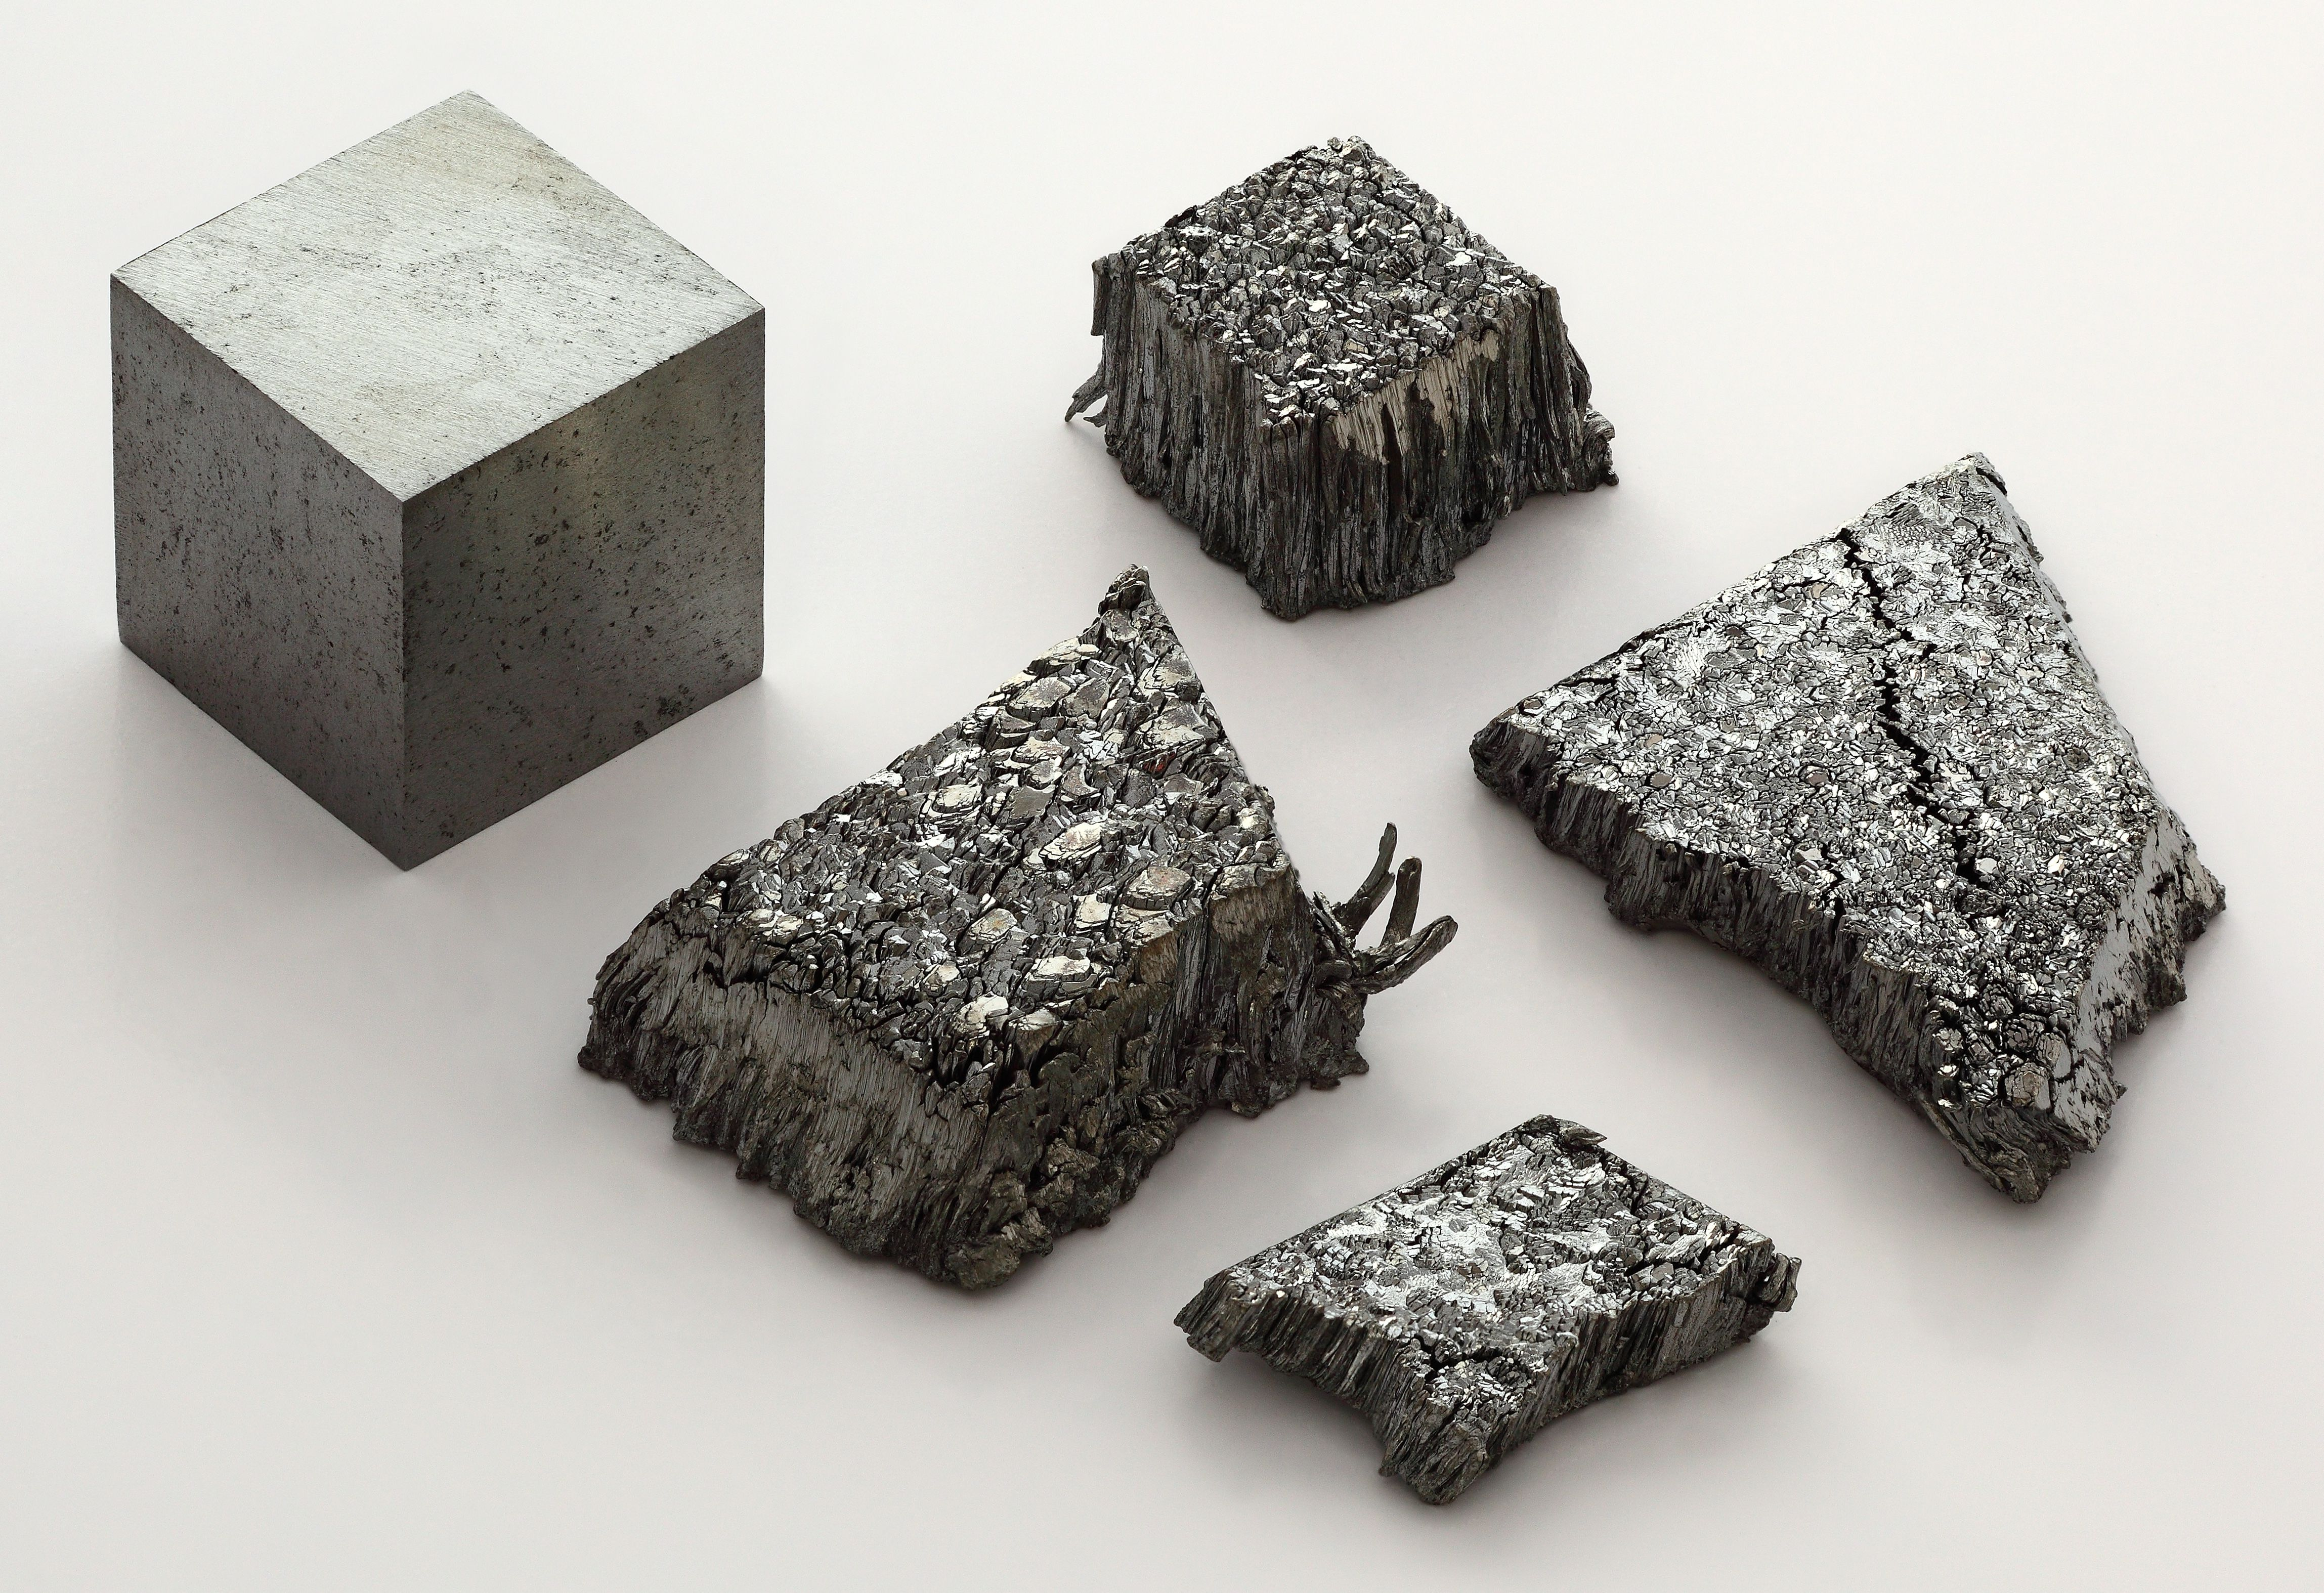 This is a photo of various forms of lutetium.